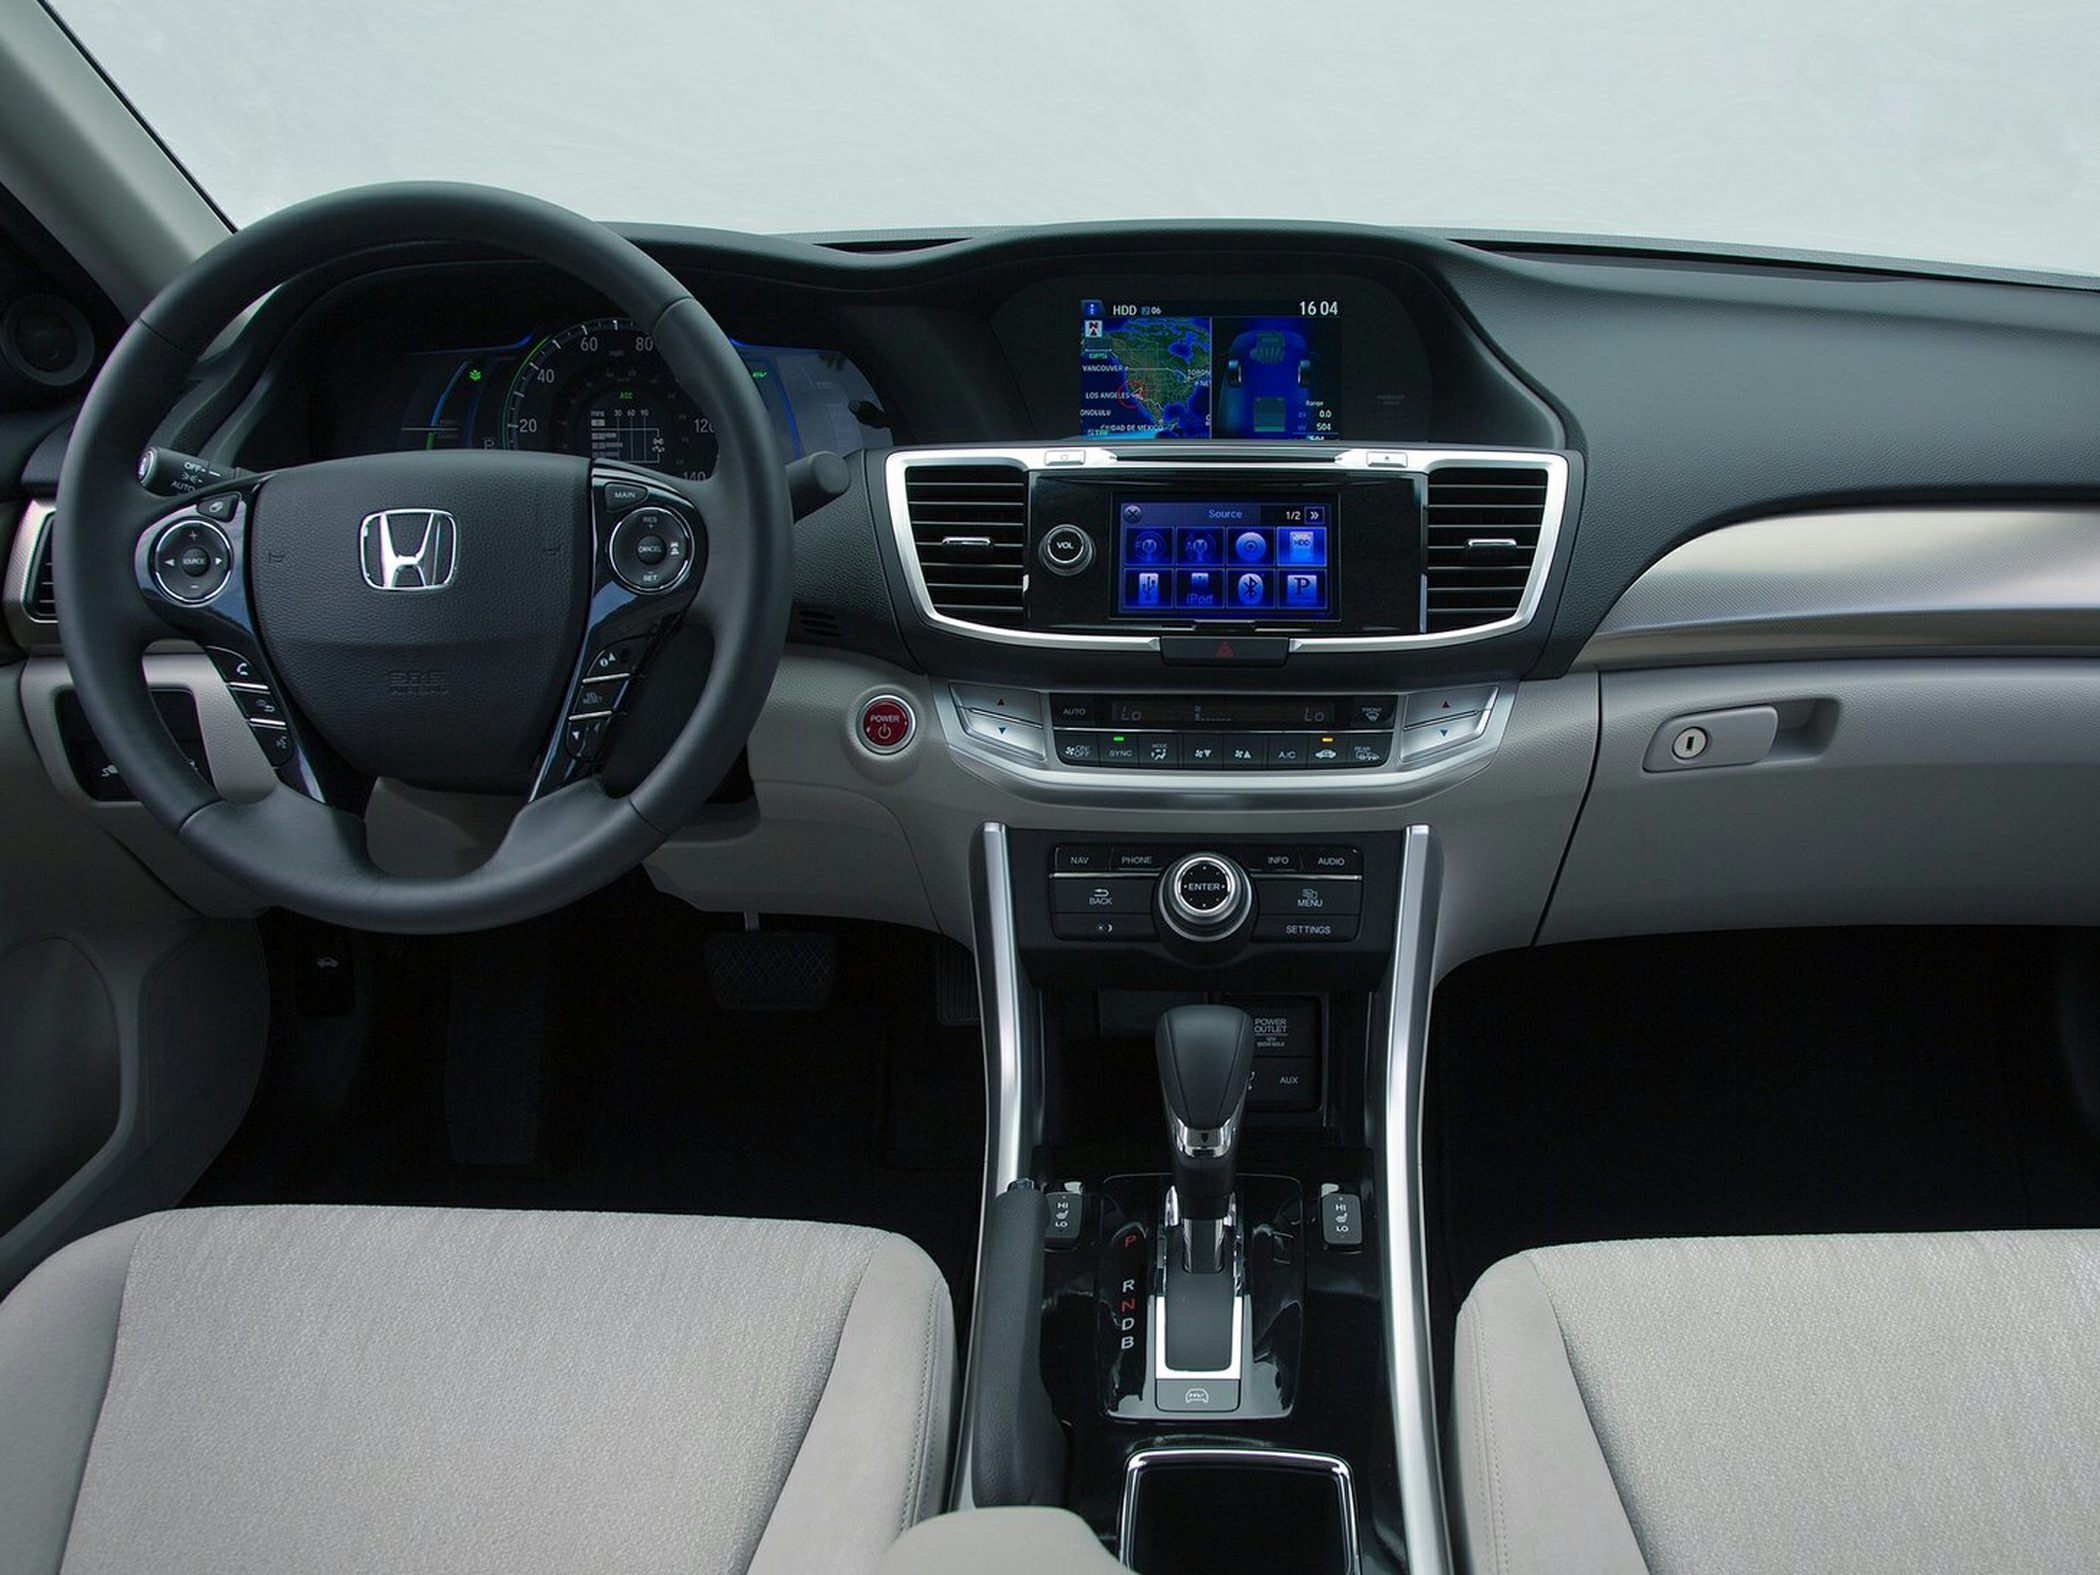 2014 Honda Accord Plug-In Hybrid Interior